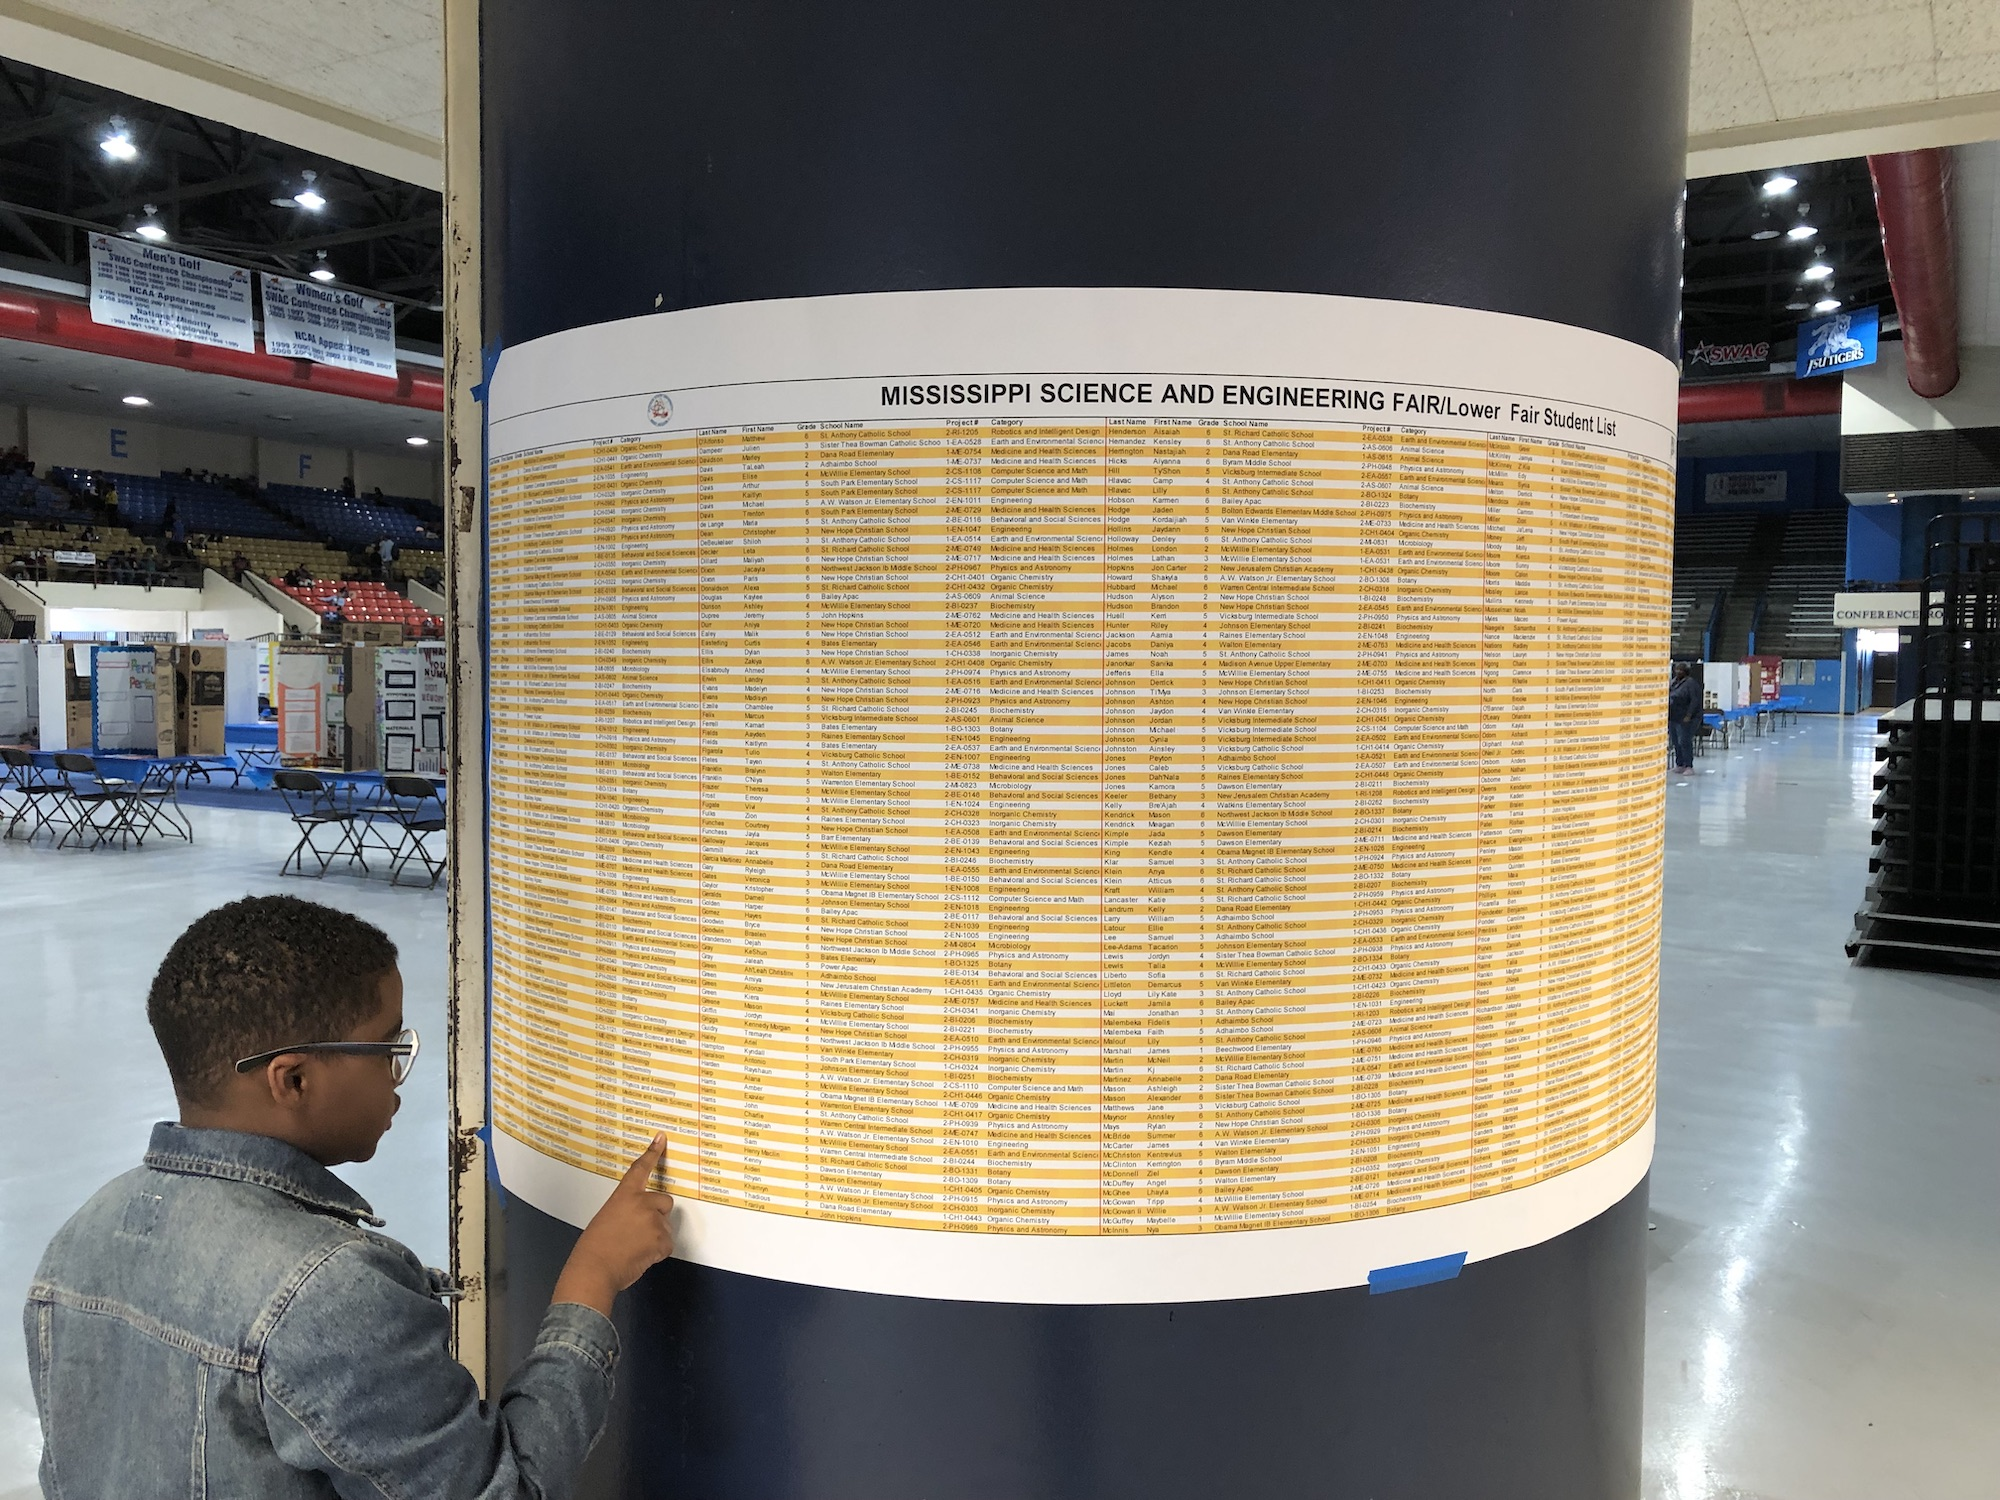 A student checks names of participants at the Region II Mississippi Science and Engineering Fair this spring. Participants represent six counties: Claiborne, Copiah, Hinds, Madison, Rankin and Warren. (Photo by L.A. Warren/JSU)